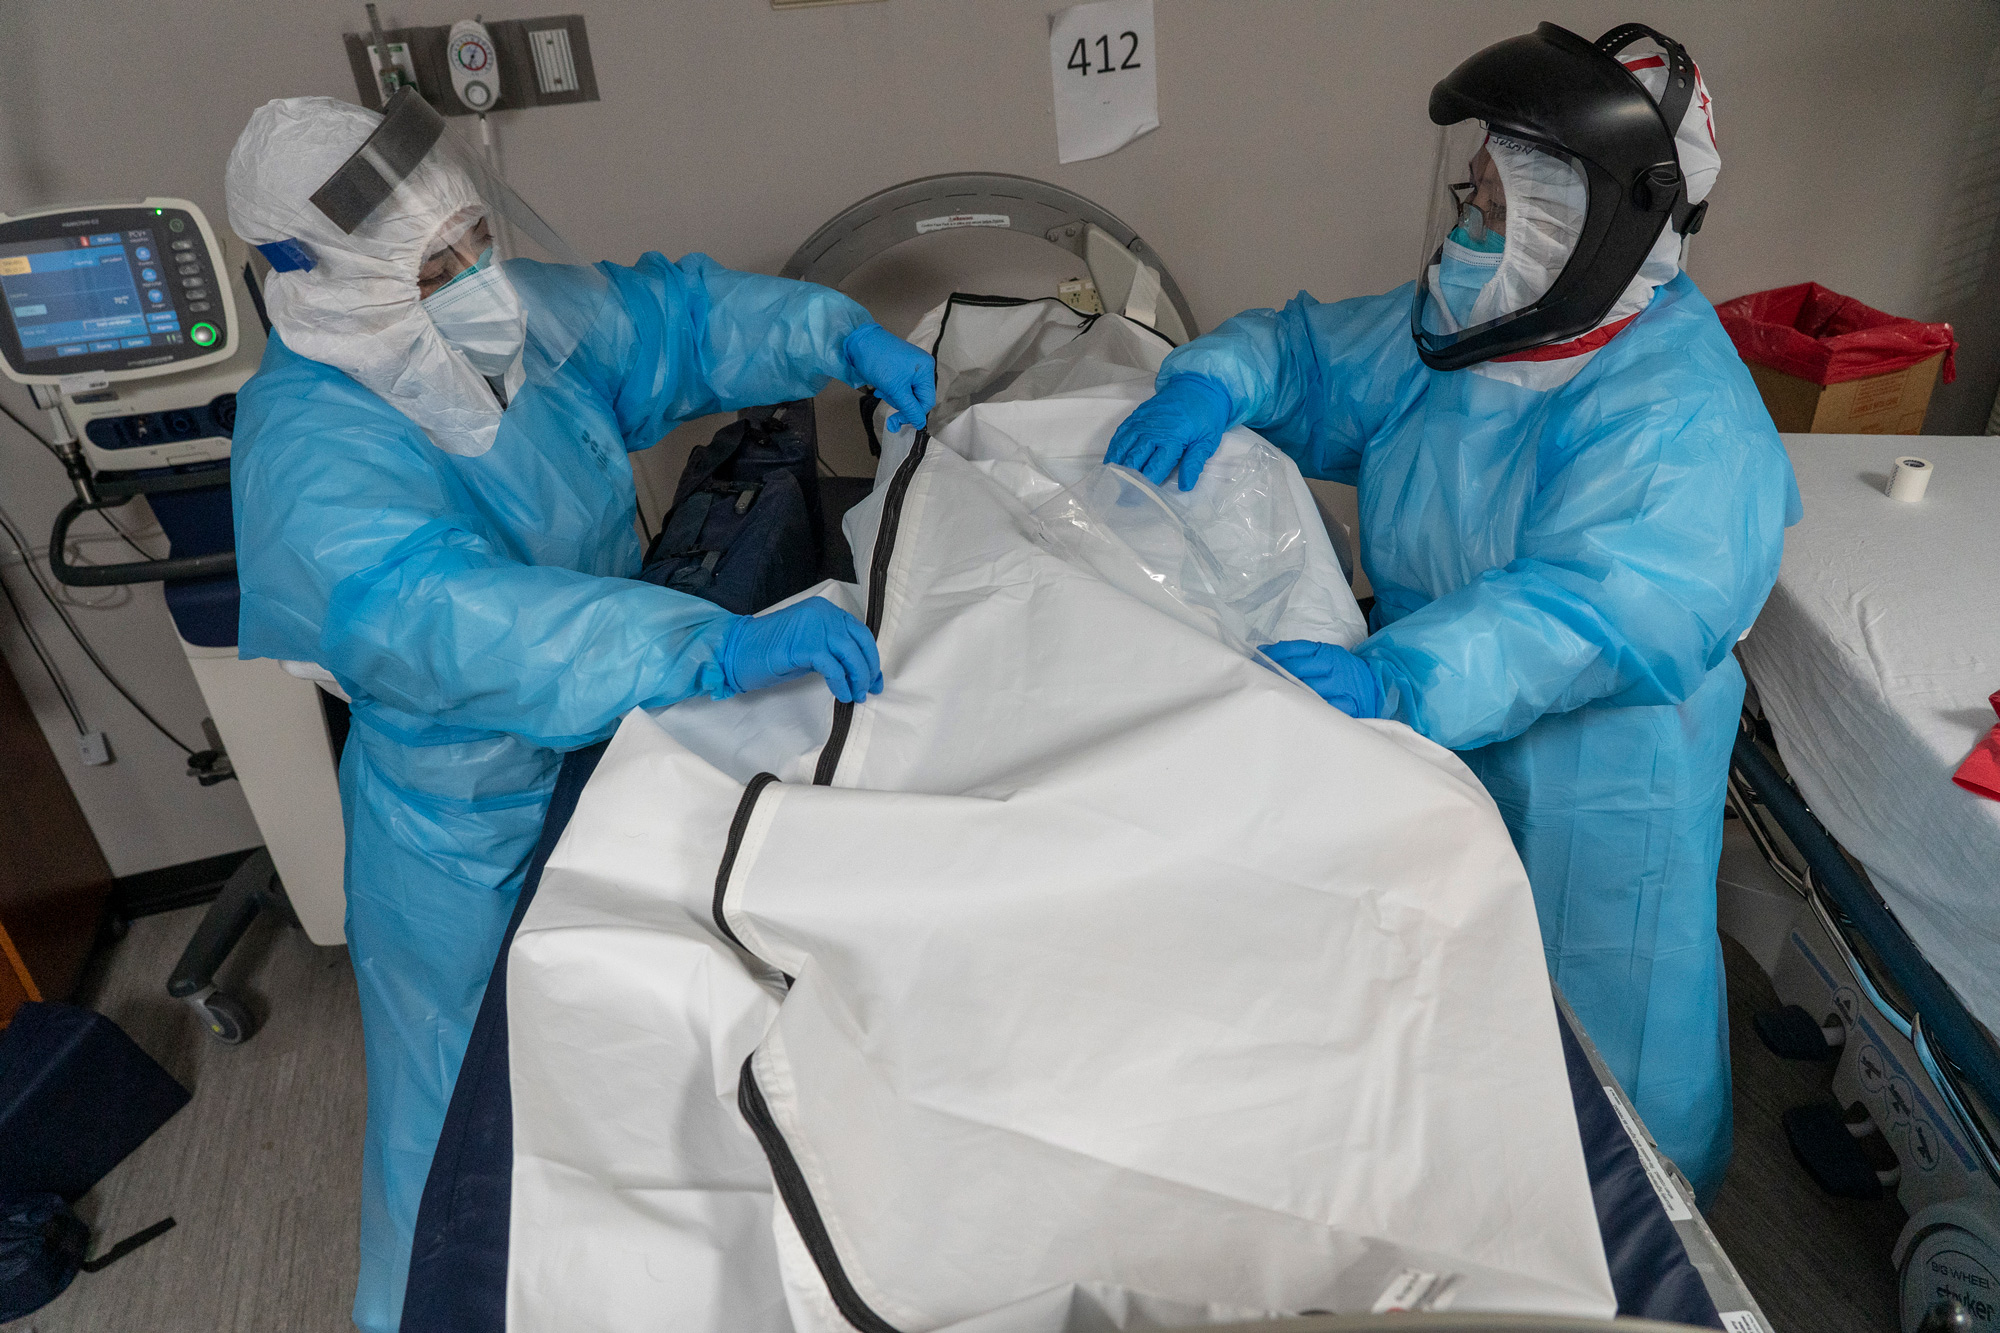 Medical staff members zip up a body bag containing a deceased patient in the COVID-19 intensive care unit at the United Memorial Medical Center on December 6 in Houston, Texas.